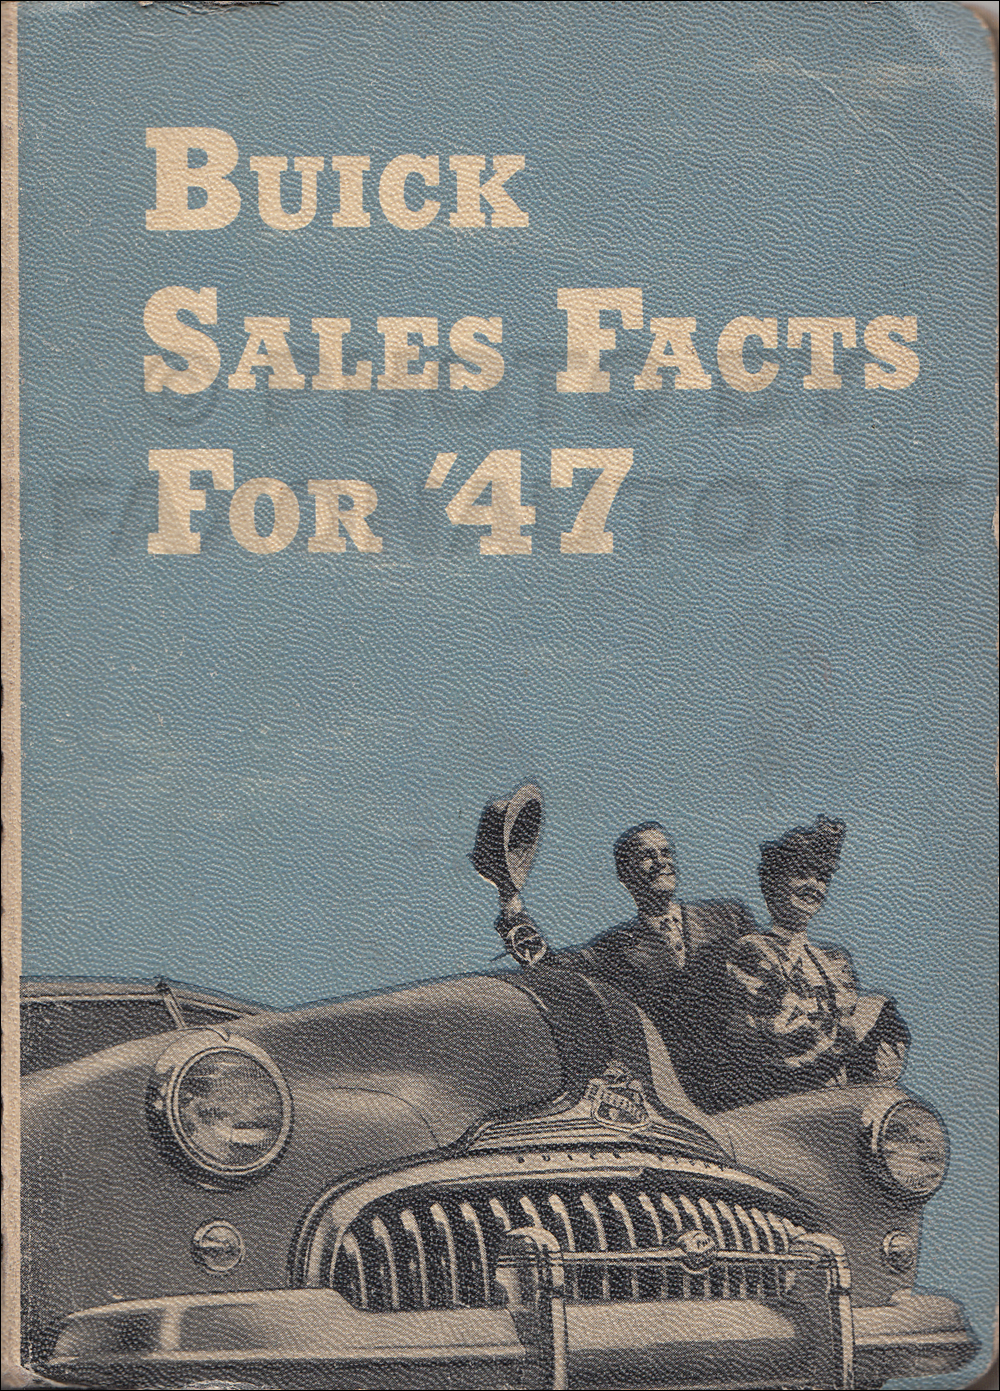 1947 Buick Sales Facts Book Original